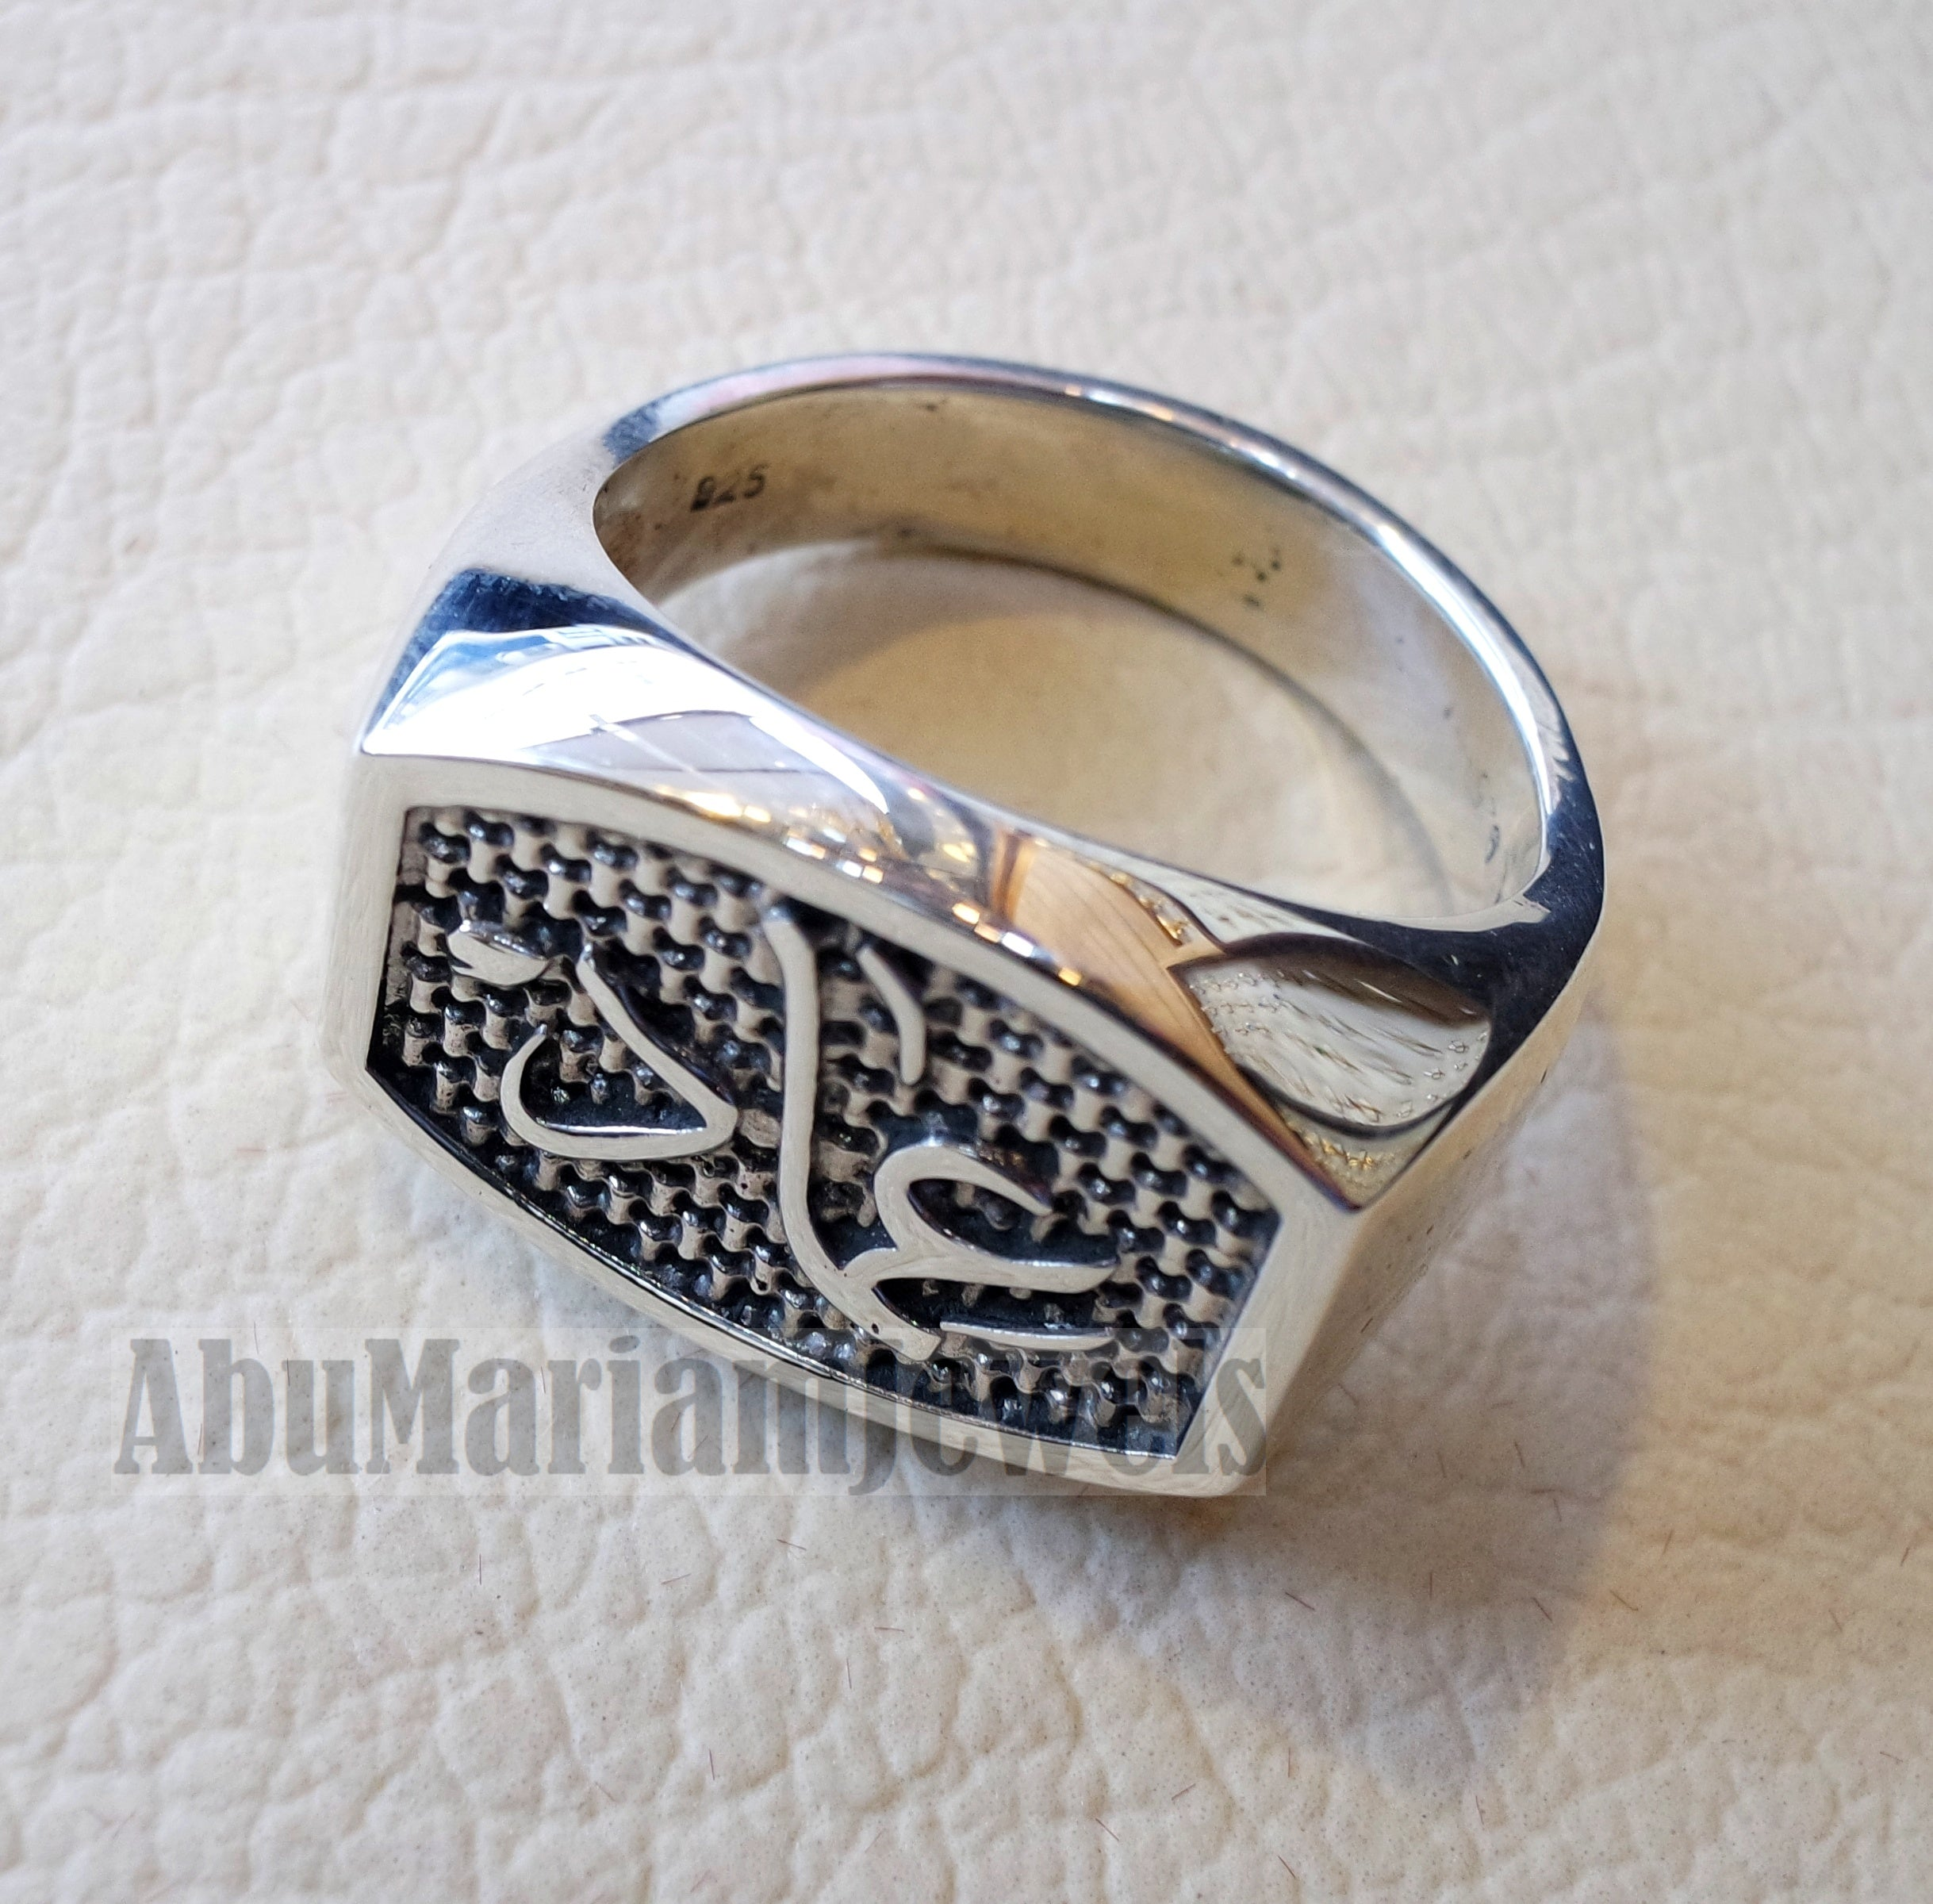 Name ring customized Arabic calligraphy one word personalized heavy all sizes jewelry style sterling silver 925 SN1004 خاتم اسم تفصيل